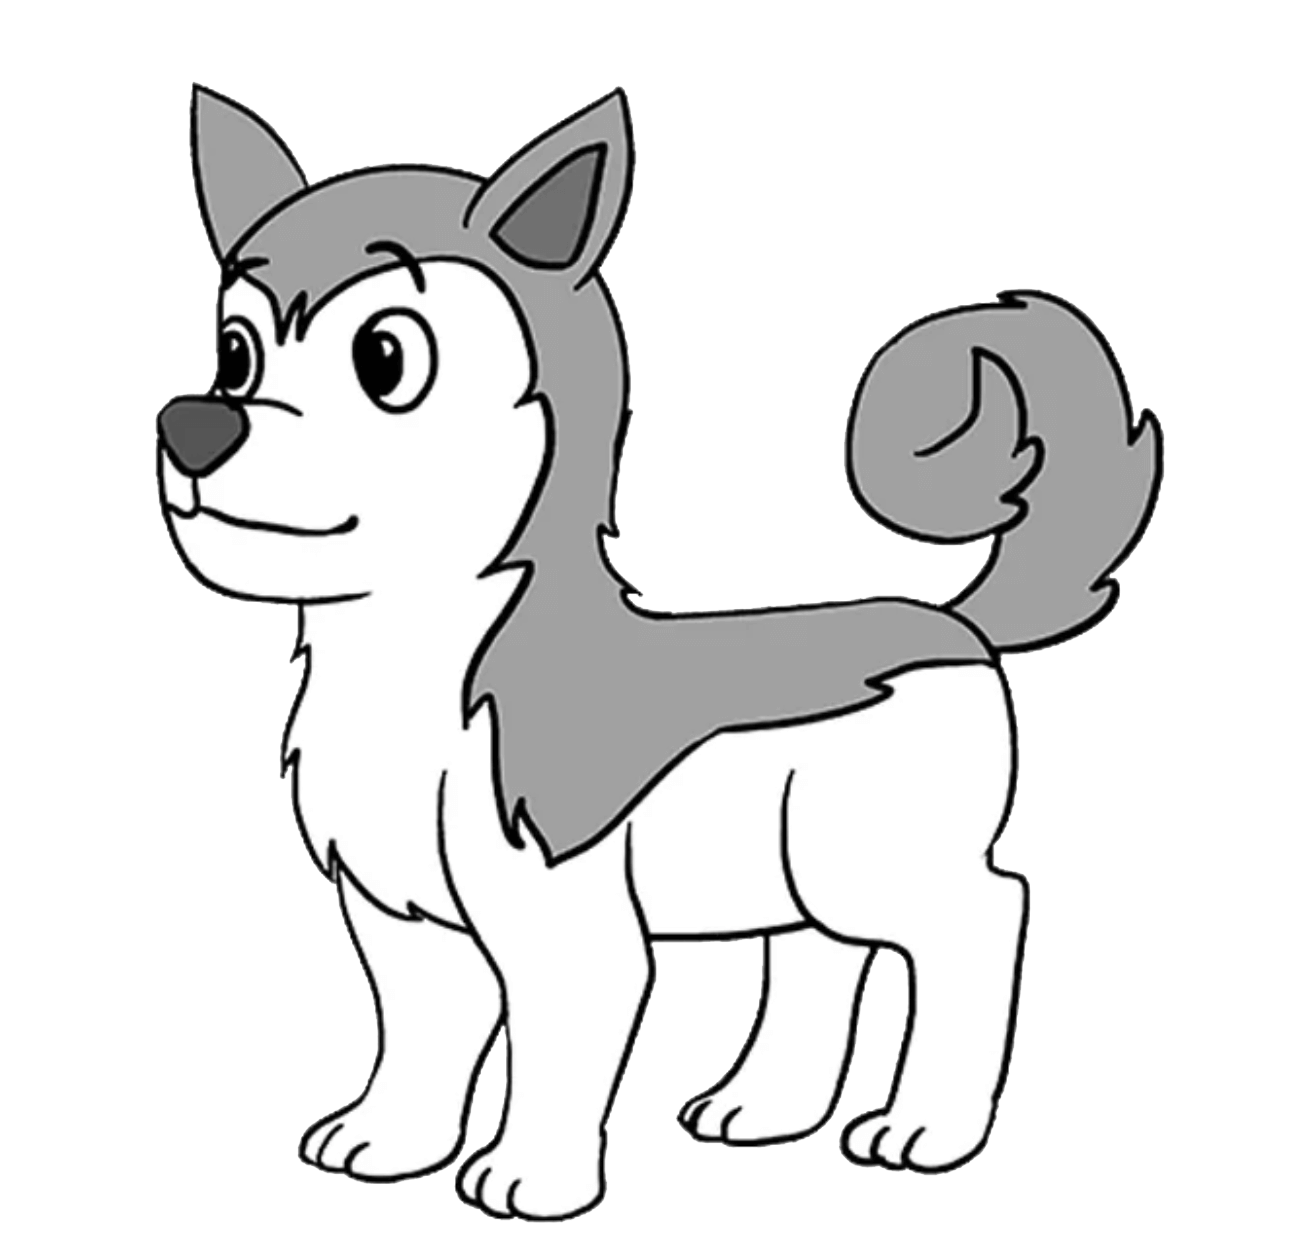 Learn how to draw a cute Siberian Husky dog